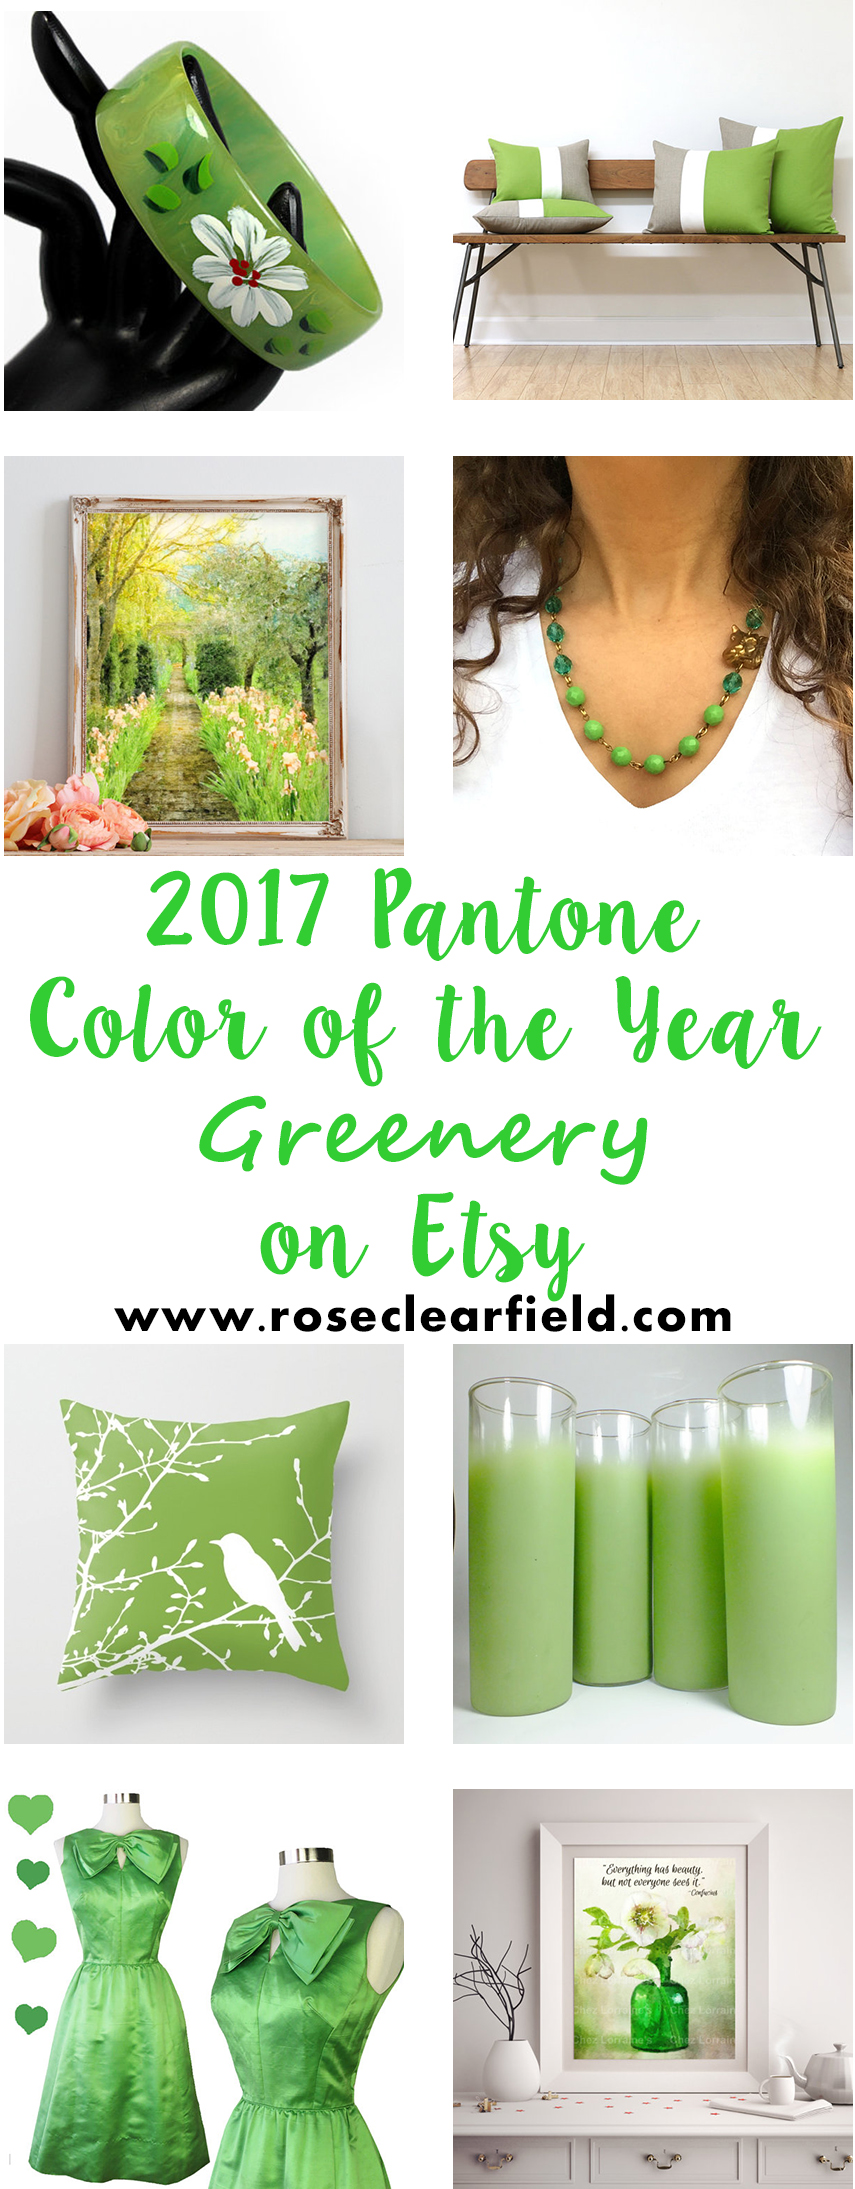 2017 Pantone Color of the Year Greenery on Etsy | https://www.roseclearfield.com